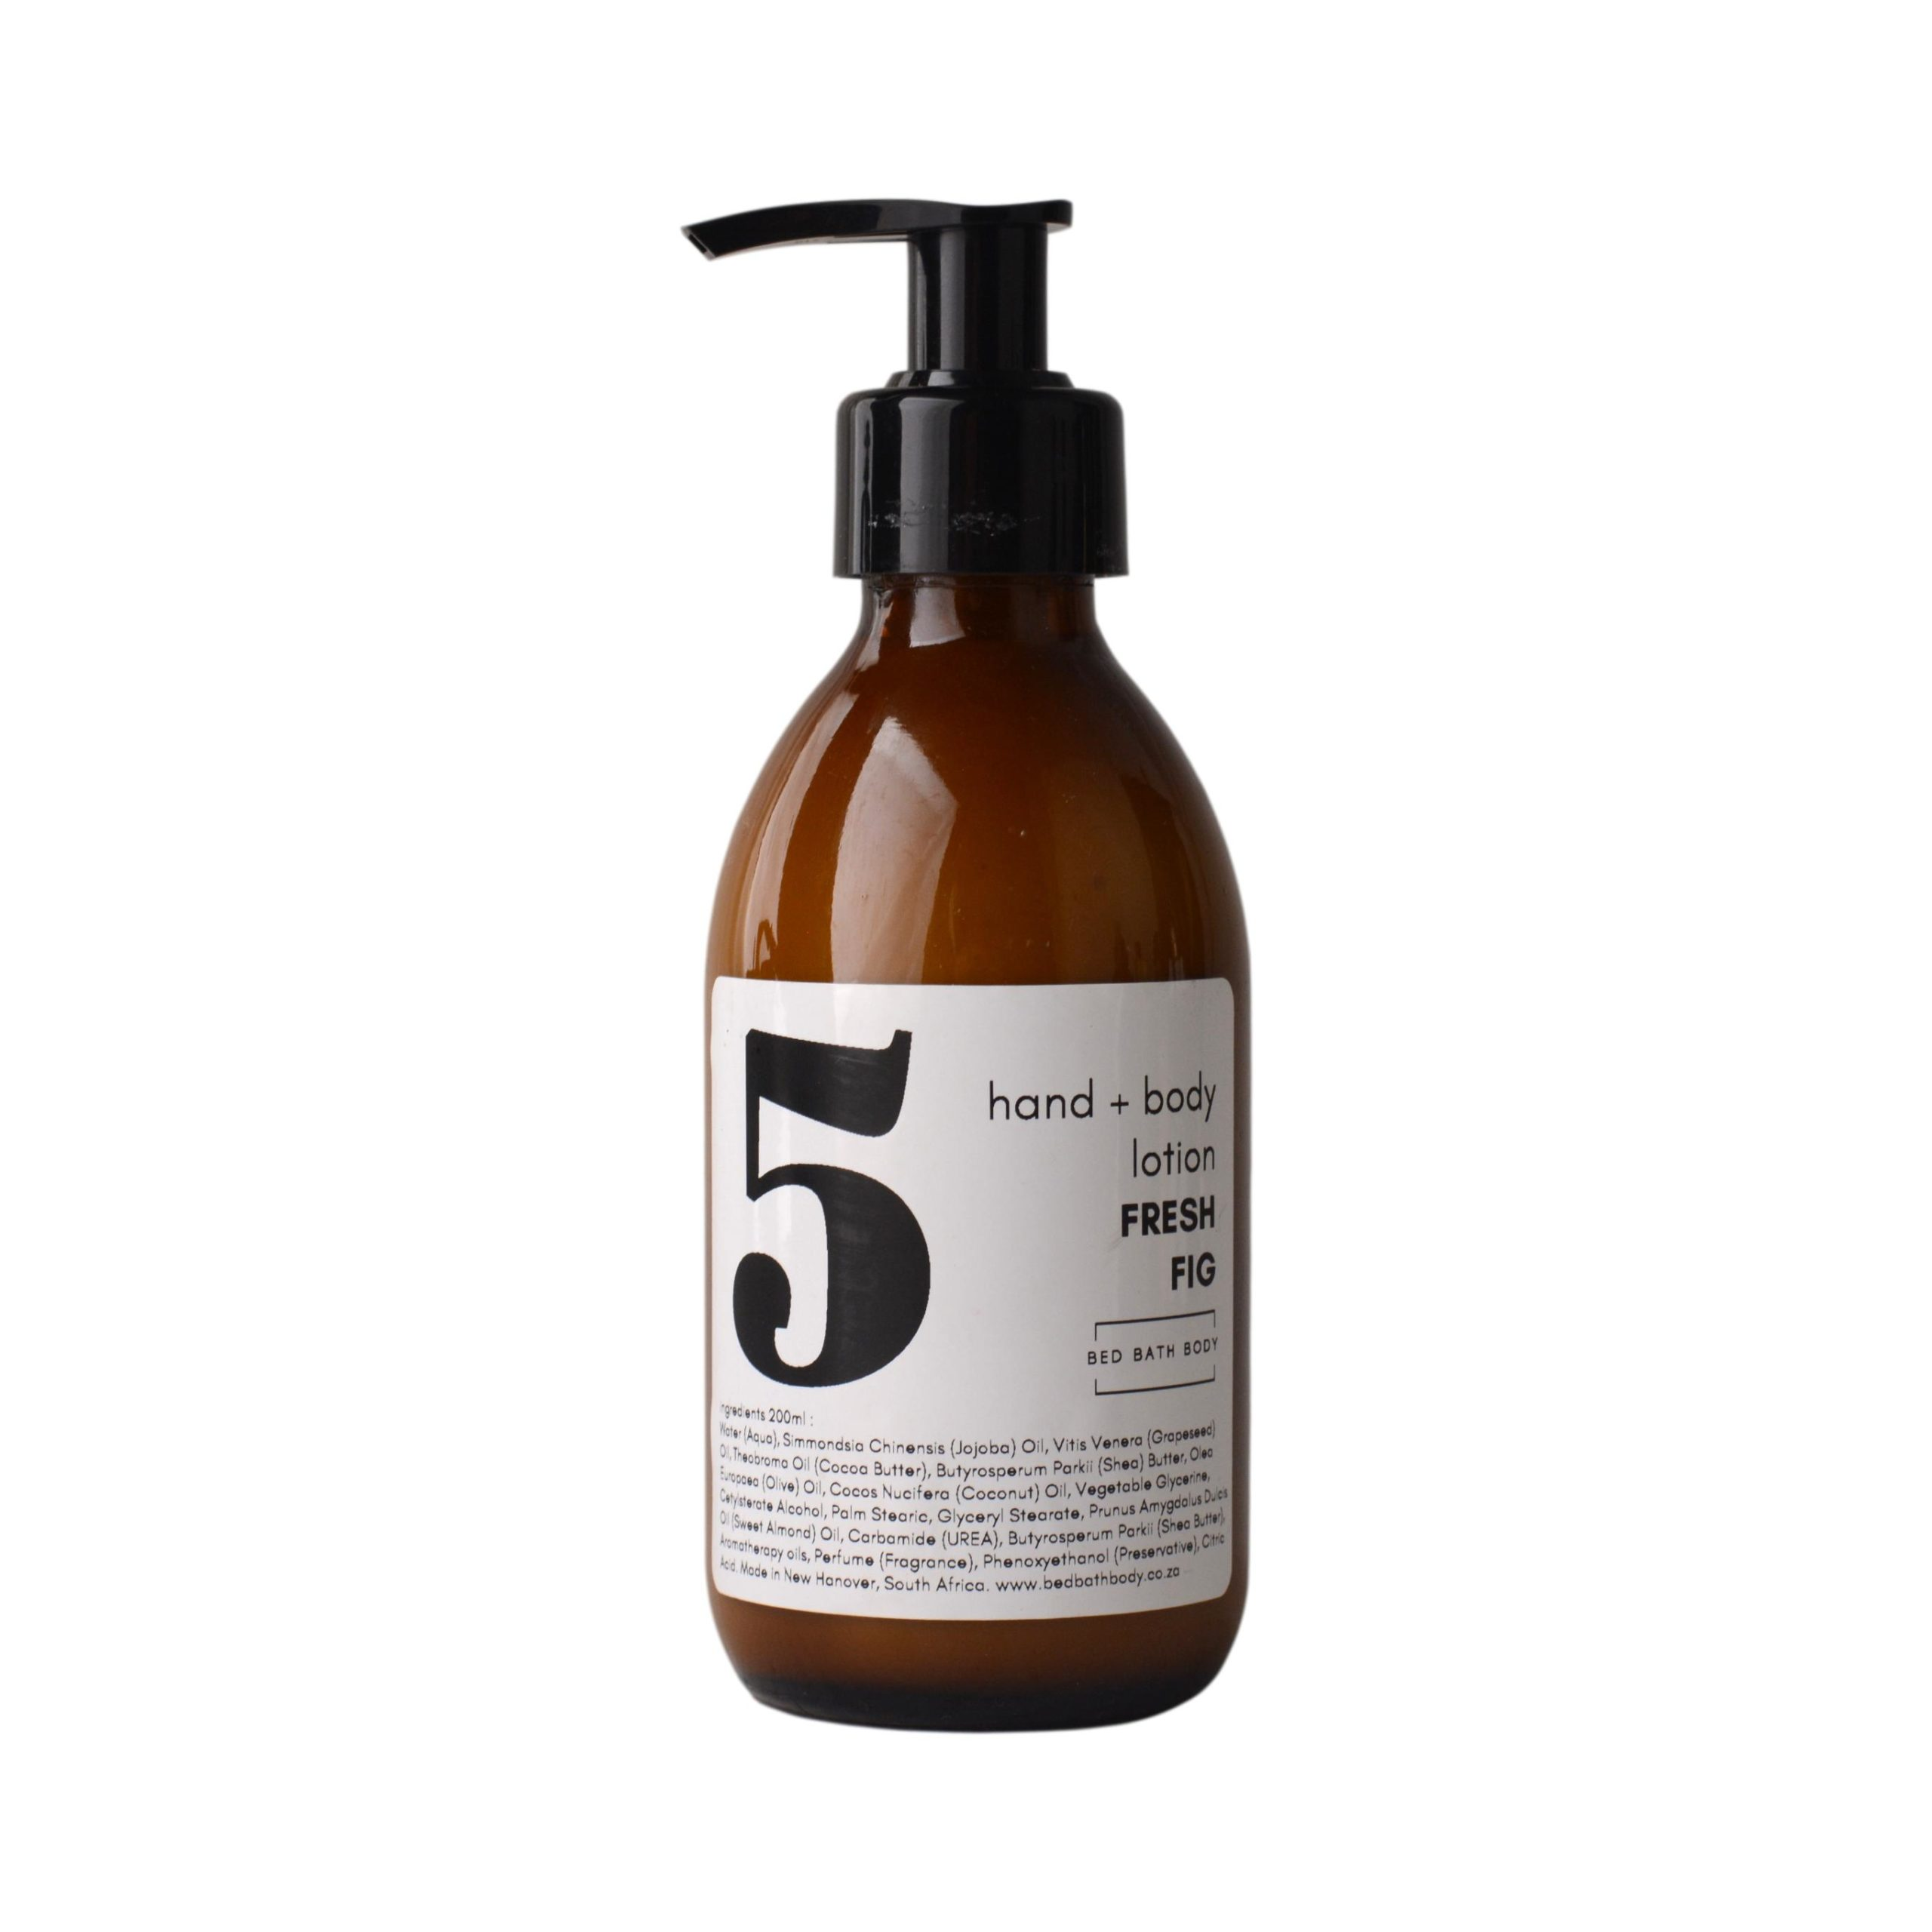 Bed-Bath-Body-jojoba-enriched-hand-and-body-lotion-200ml